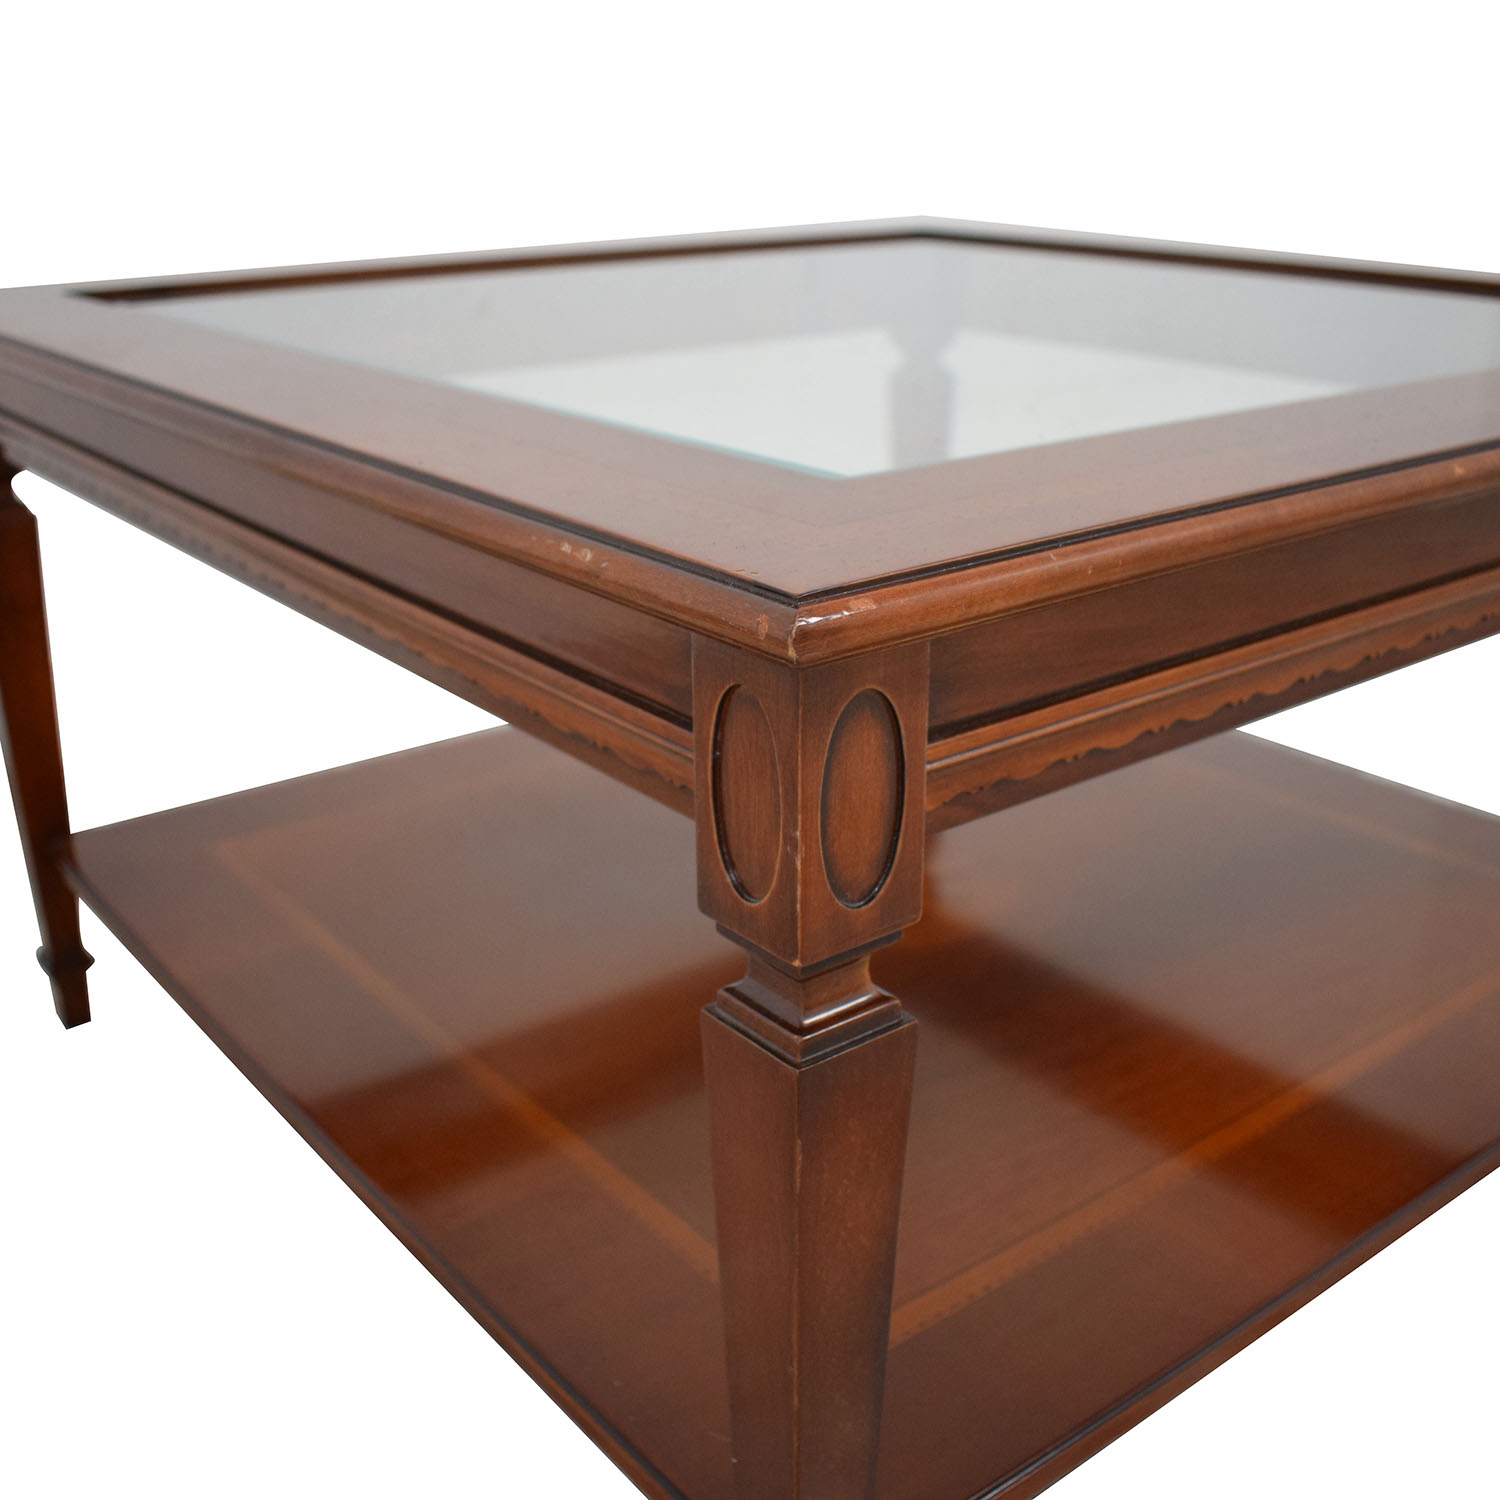 buy Maurice Villency Maurice Villency Glass Top Coffee Table online